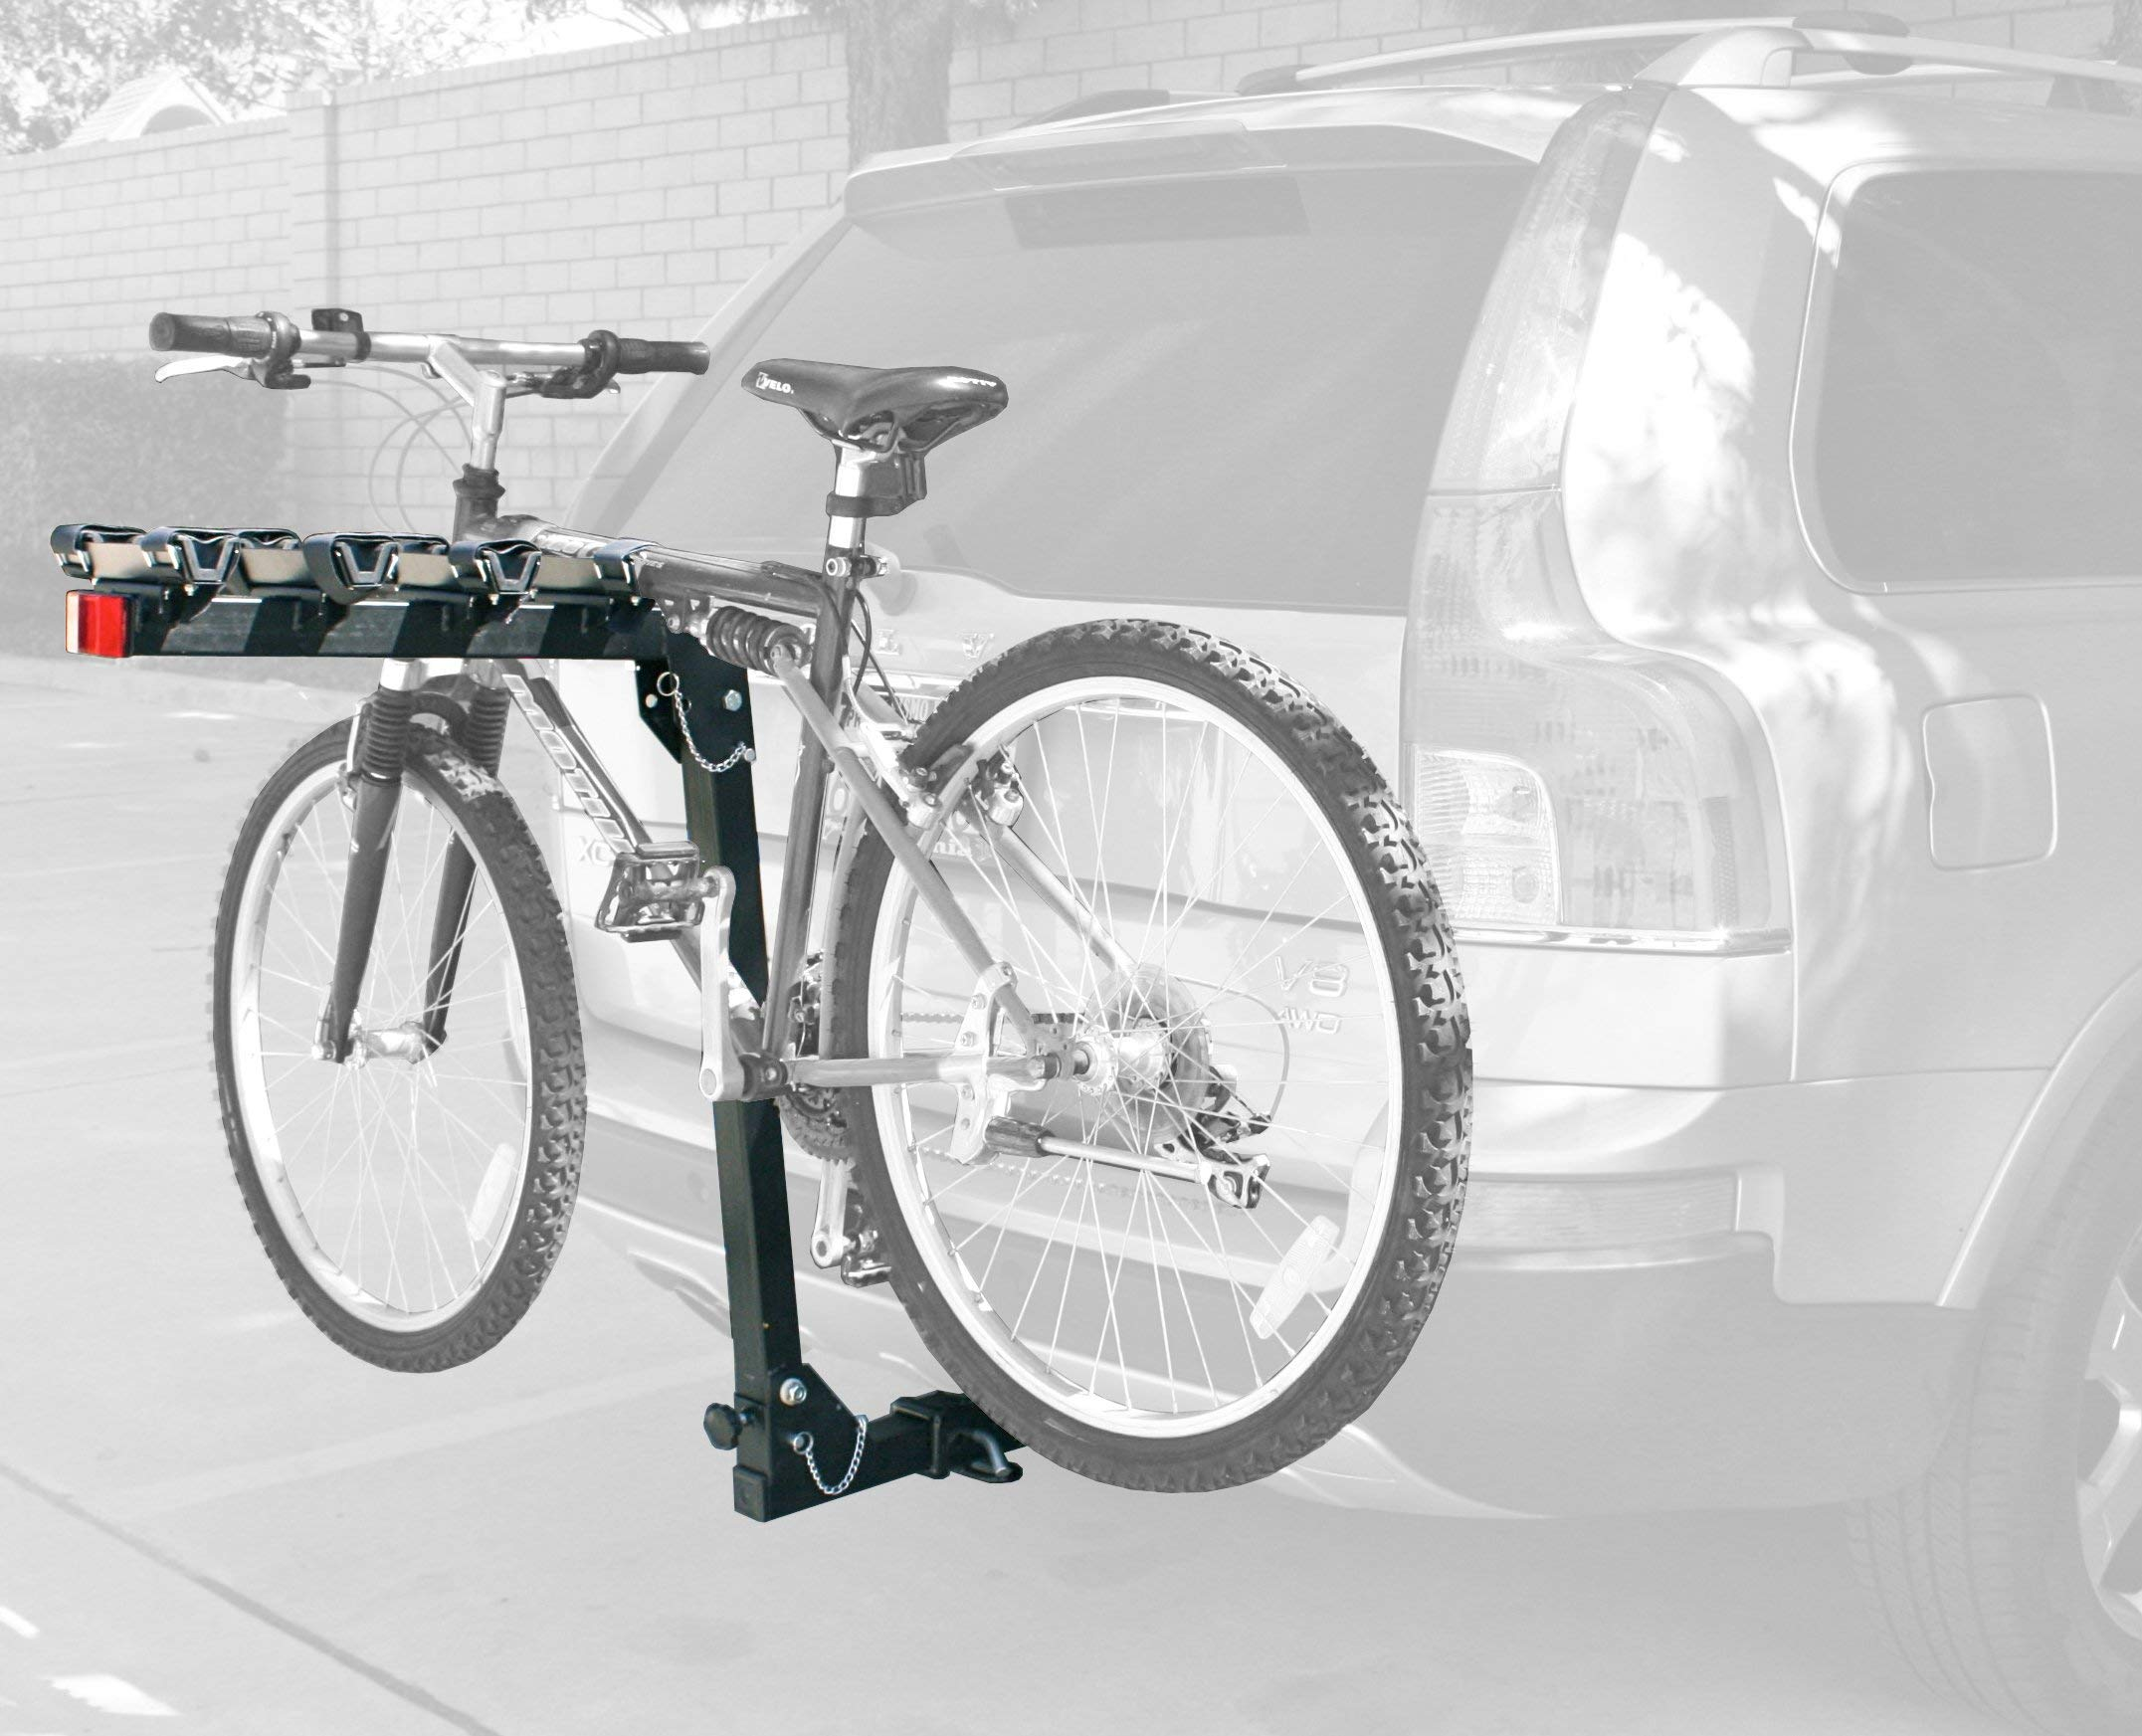 MaxxHaul (70210) 4-Bike Deluxe Hitch Mount Rack (Renewed) by MaxxHaul